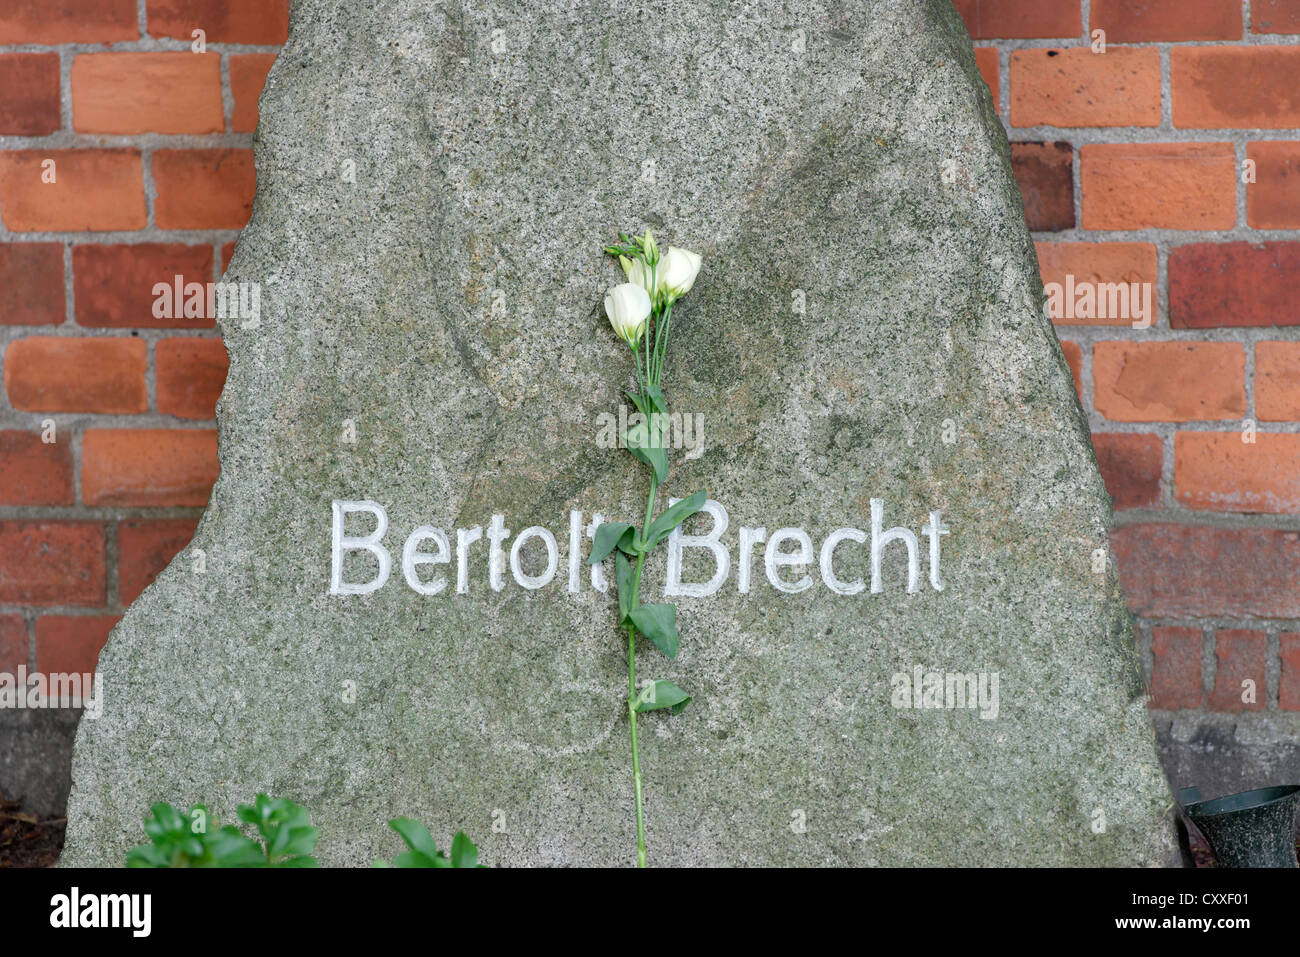 Tomb of Berthold Brecht, 1898 - 1956, a German playwright and poet, Dorotheenstadt cemetery, Berlin - Stock Image